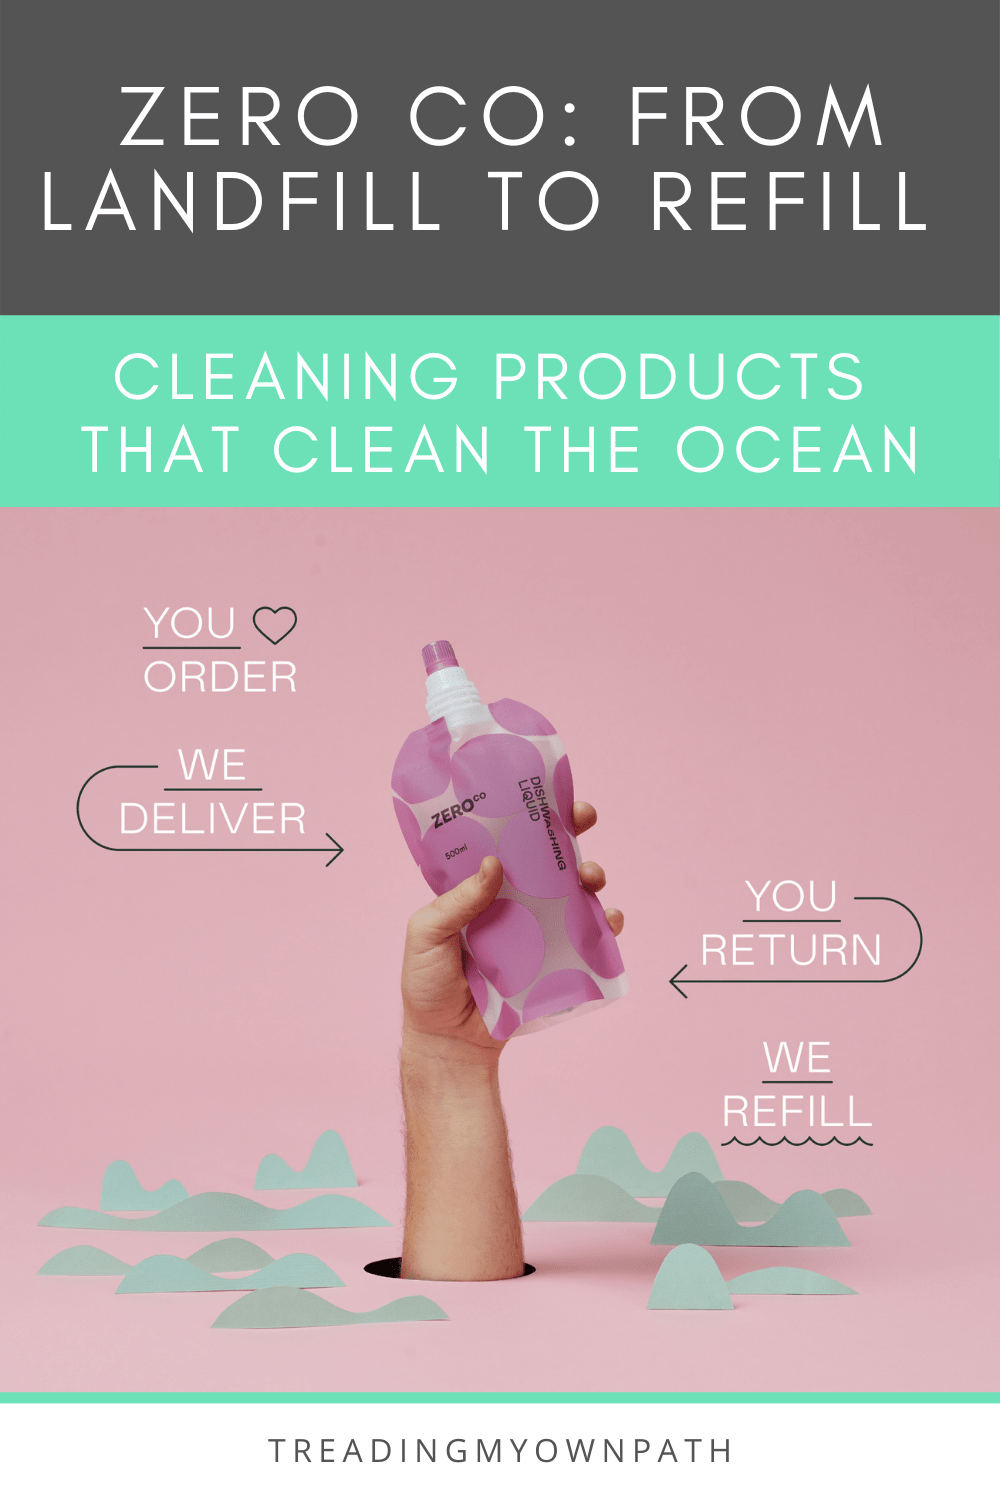 From landfill to refill: cleaning products that clean the ocean